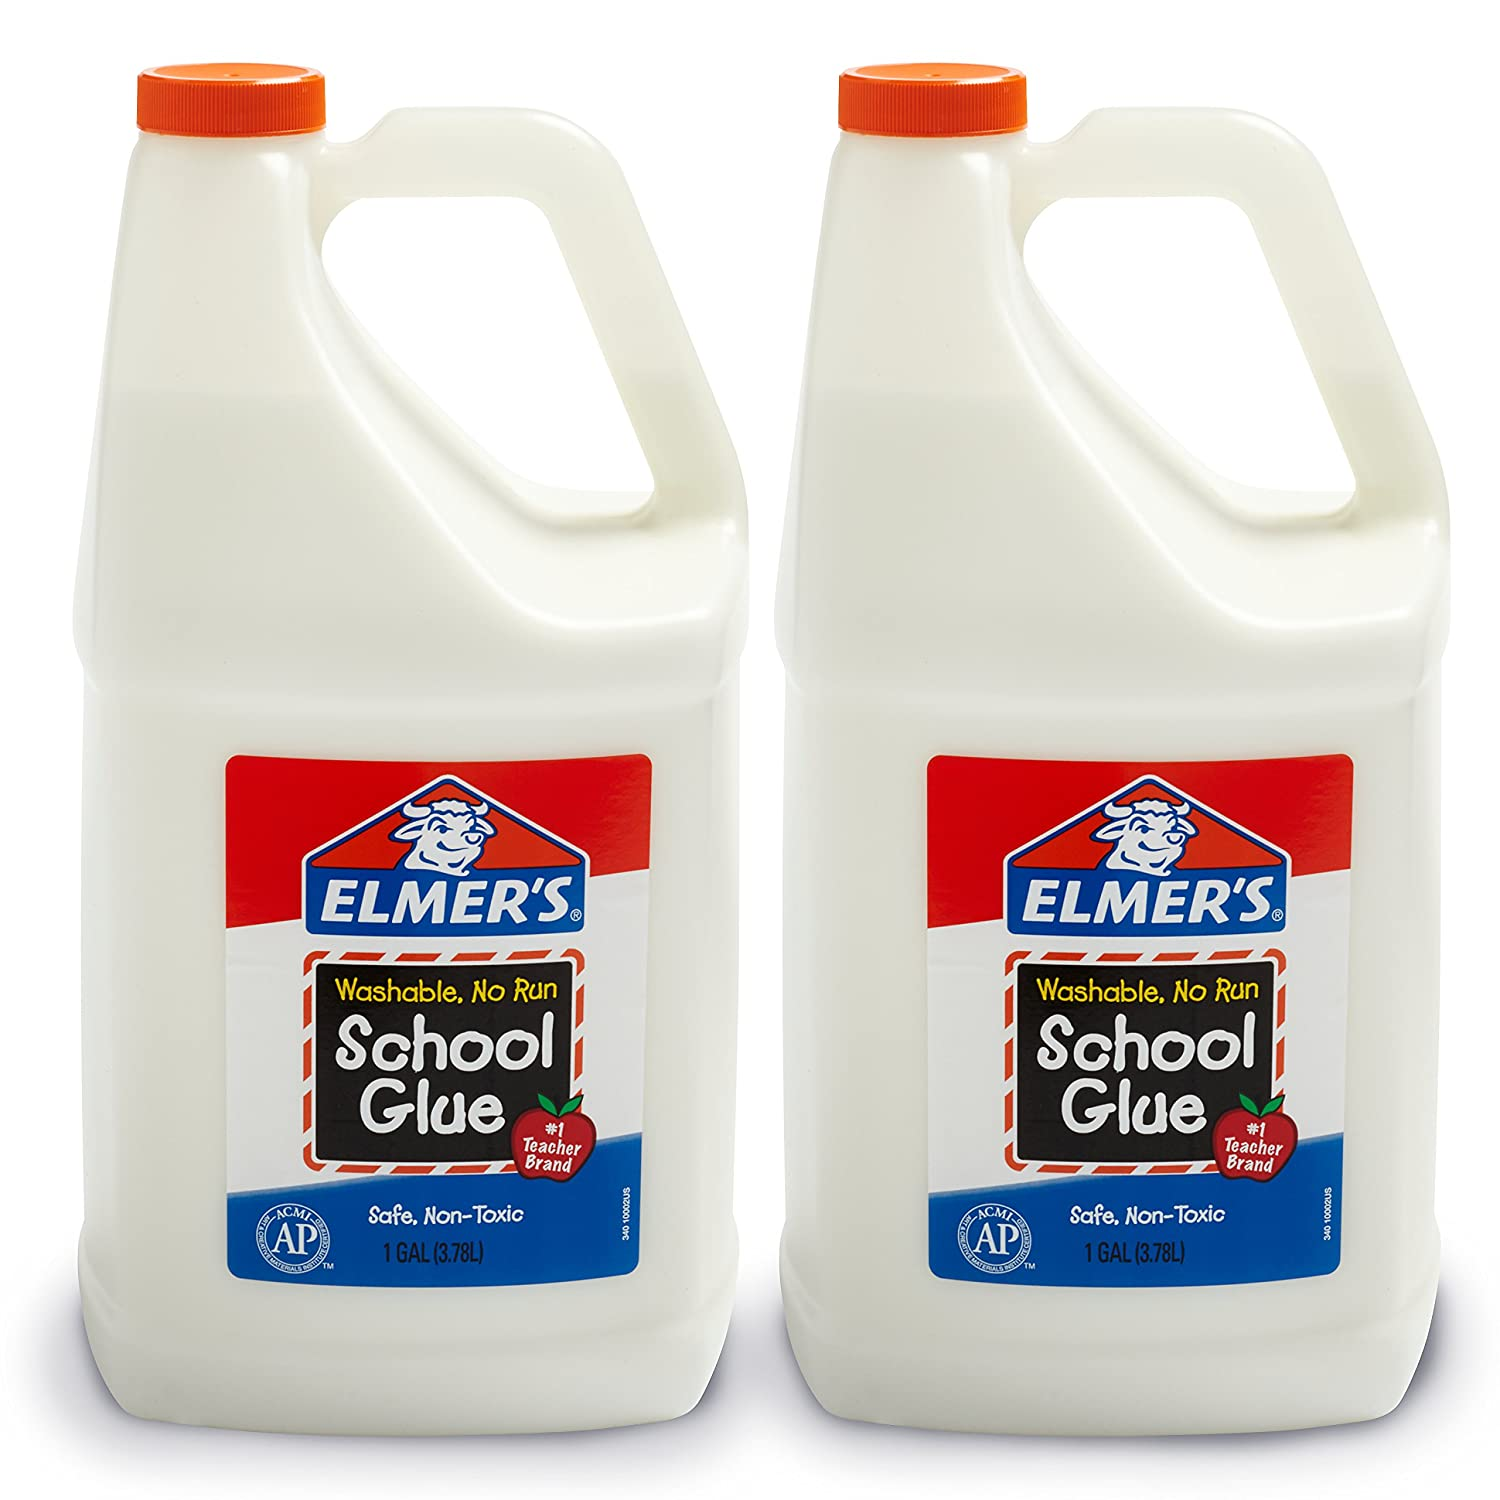 Elmer's Liquid School Glue, Washable, 1 Gallon, 2 Count - Great for Making Slime